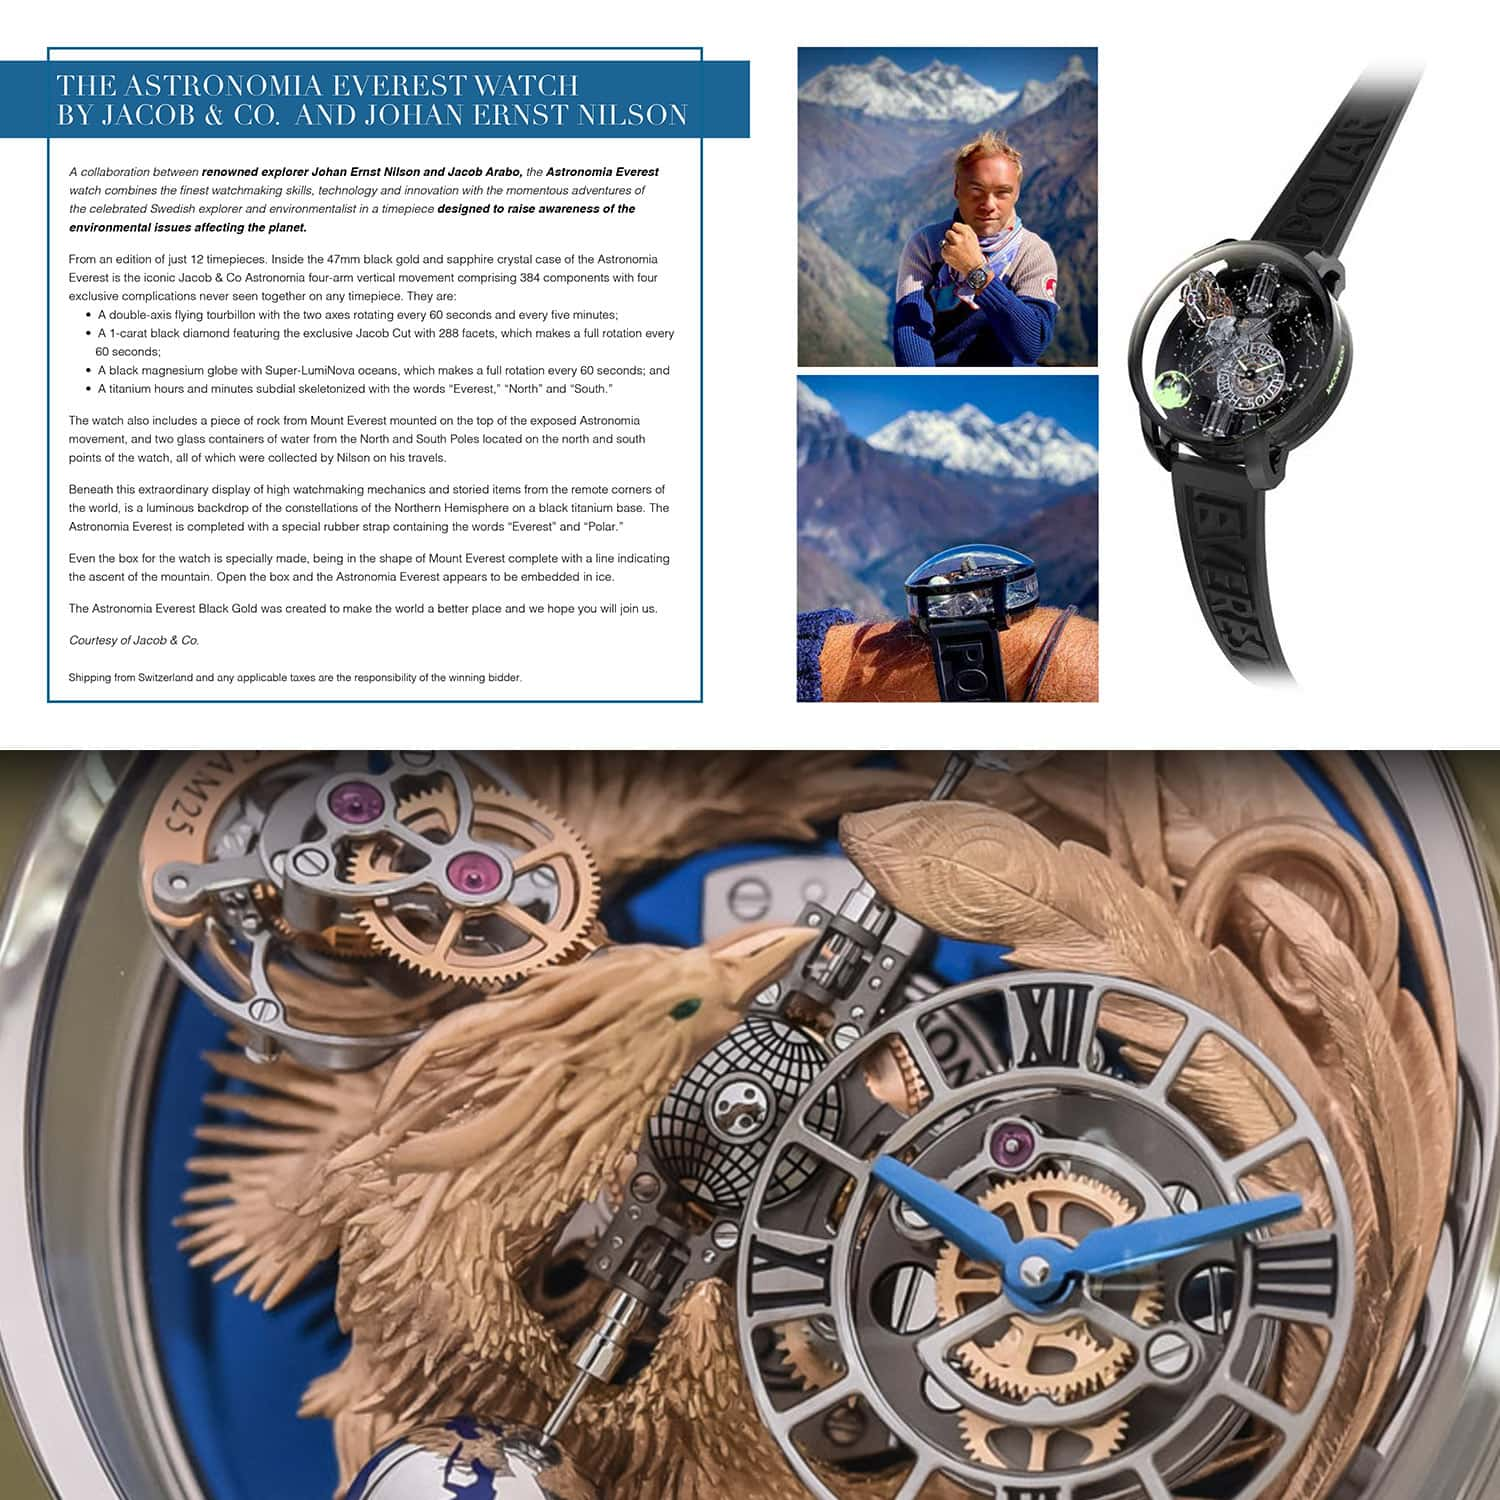 Astronomia Everest Watch by Jacob & Co and Johan Ernst Nilson for Unicef auction Gala Capri 2021 by RUNWAY MAGAZINE